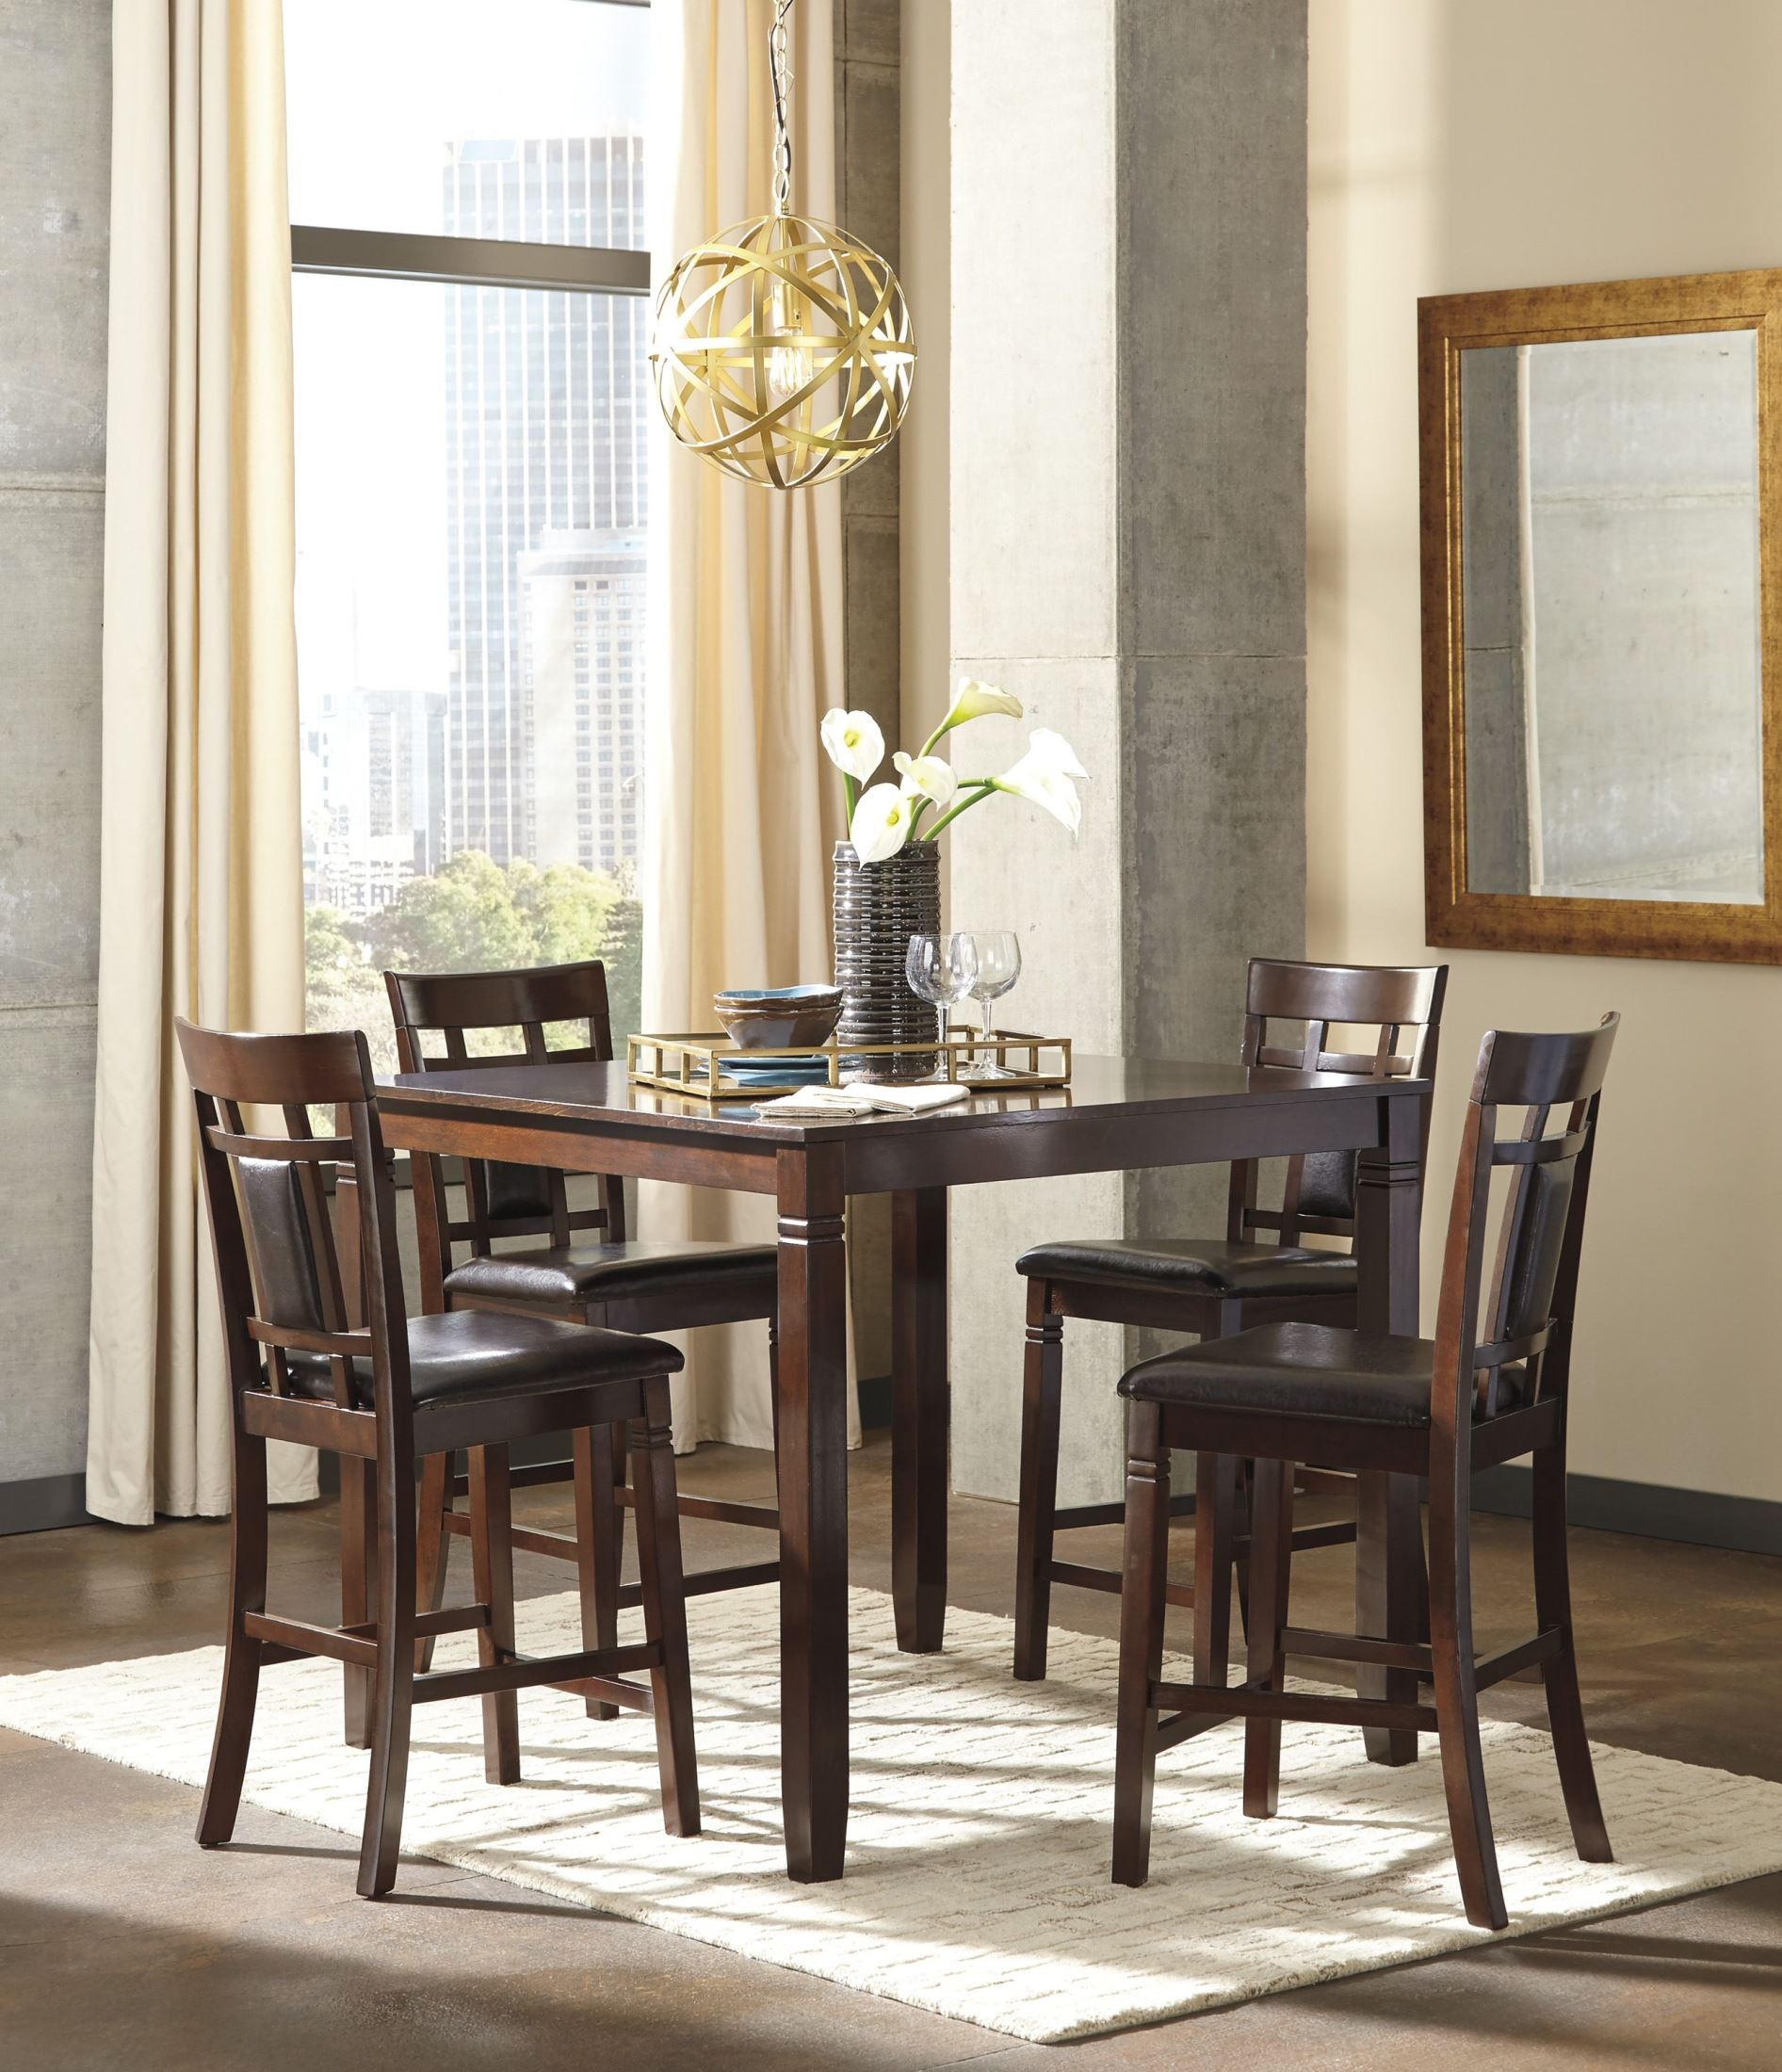 Bennox brown 5 piece counter height dining room set from ashley coleman furniture - Dining room pieces ...